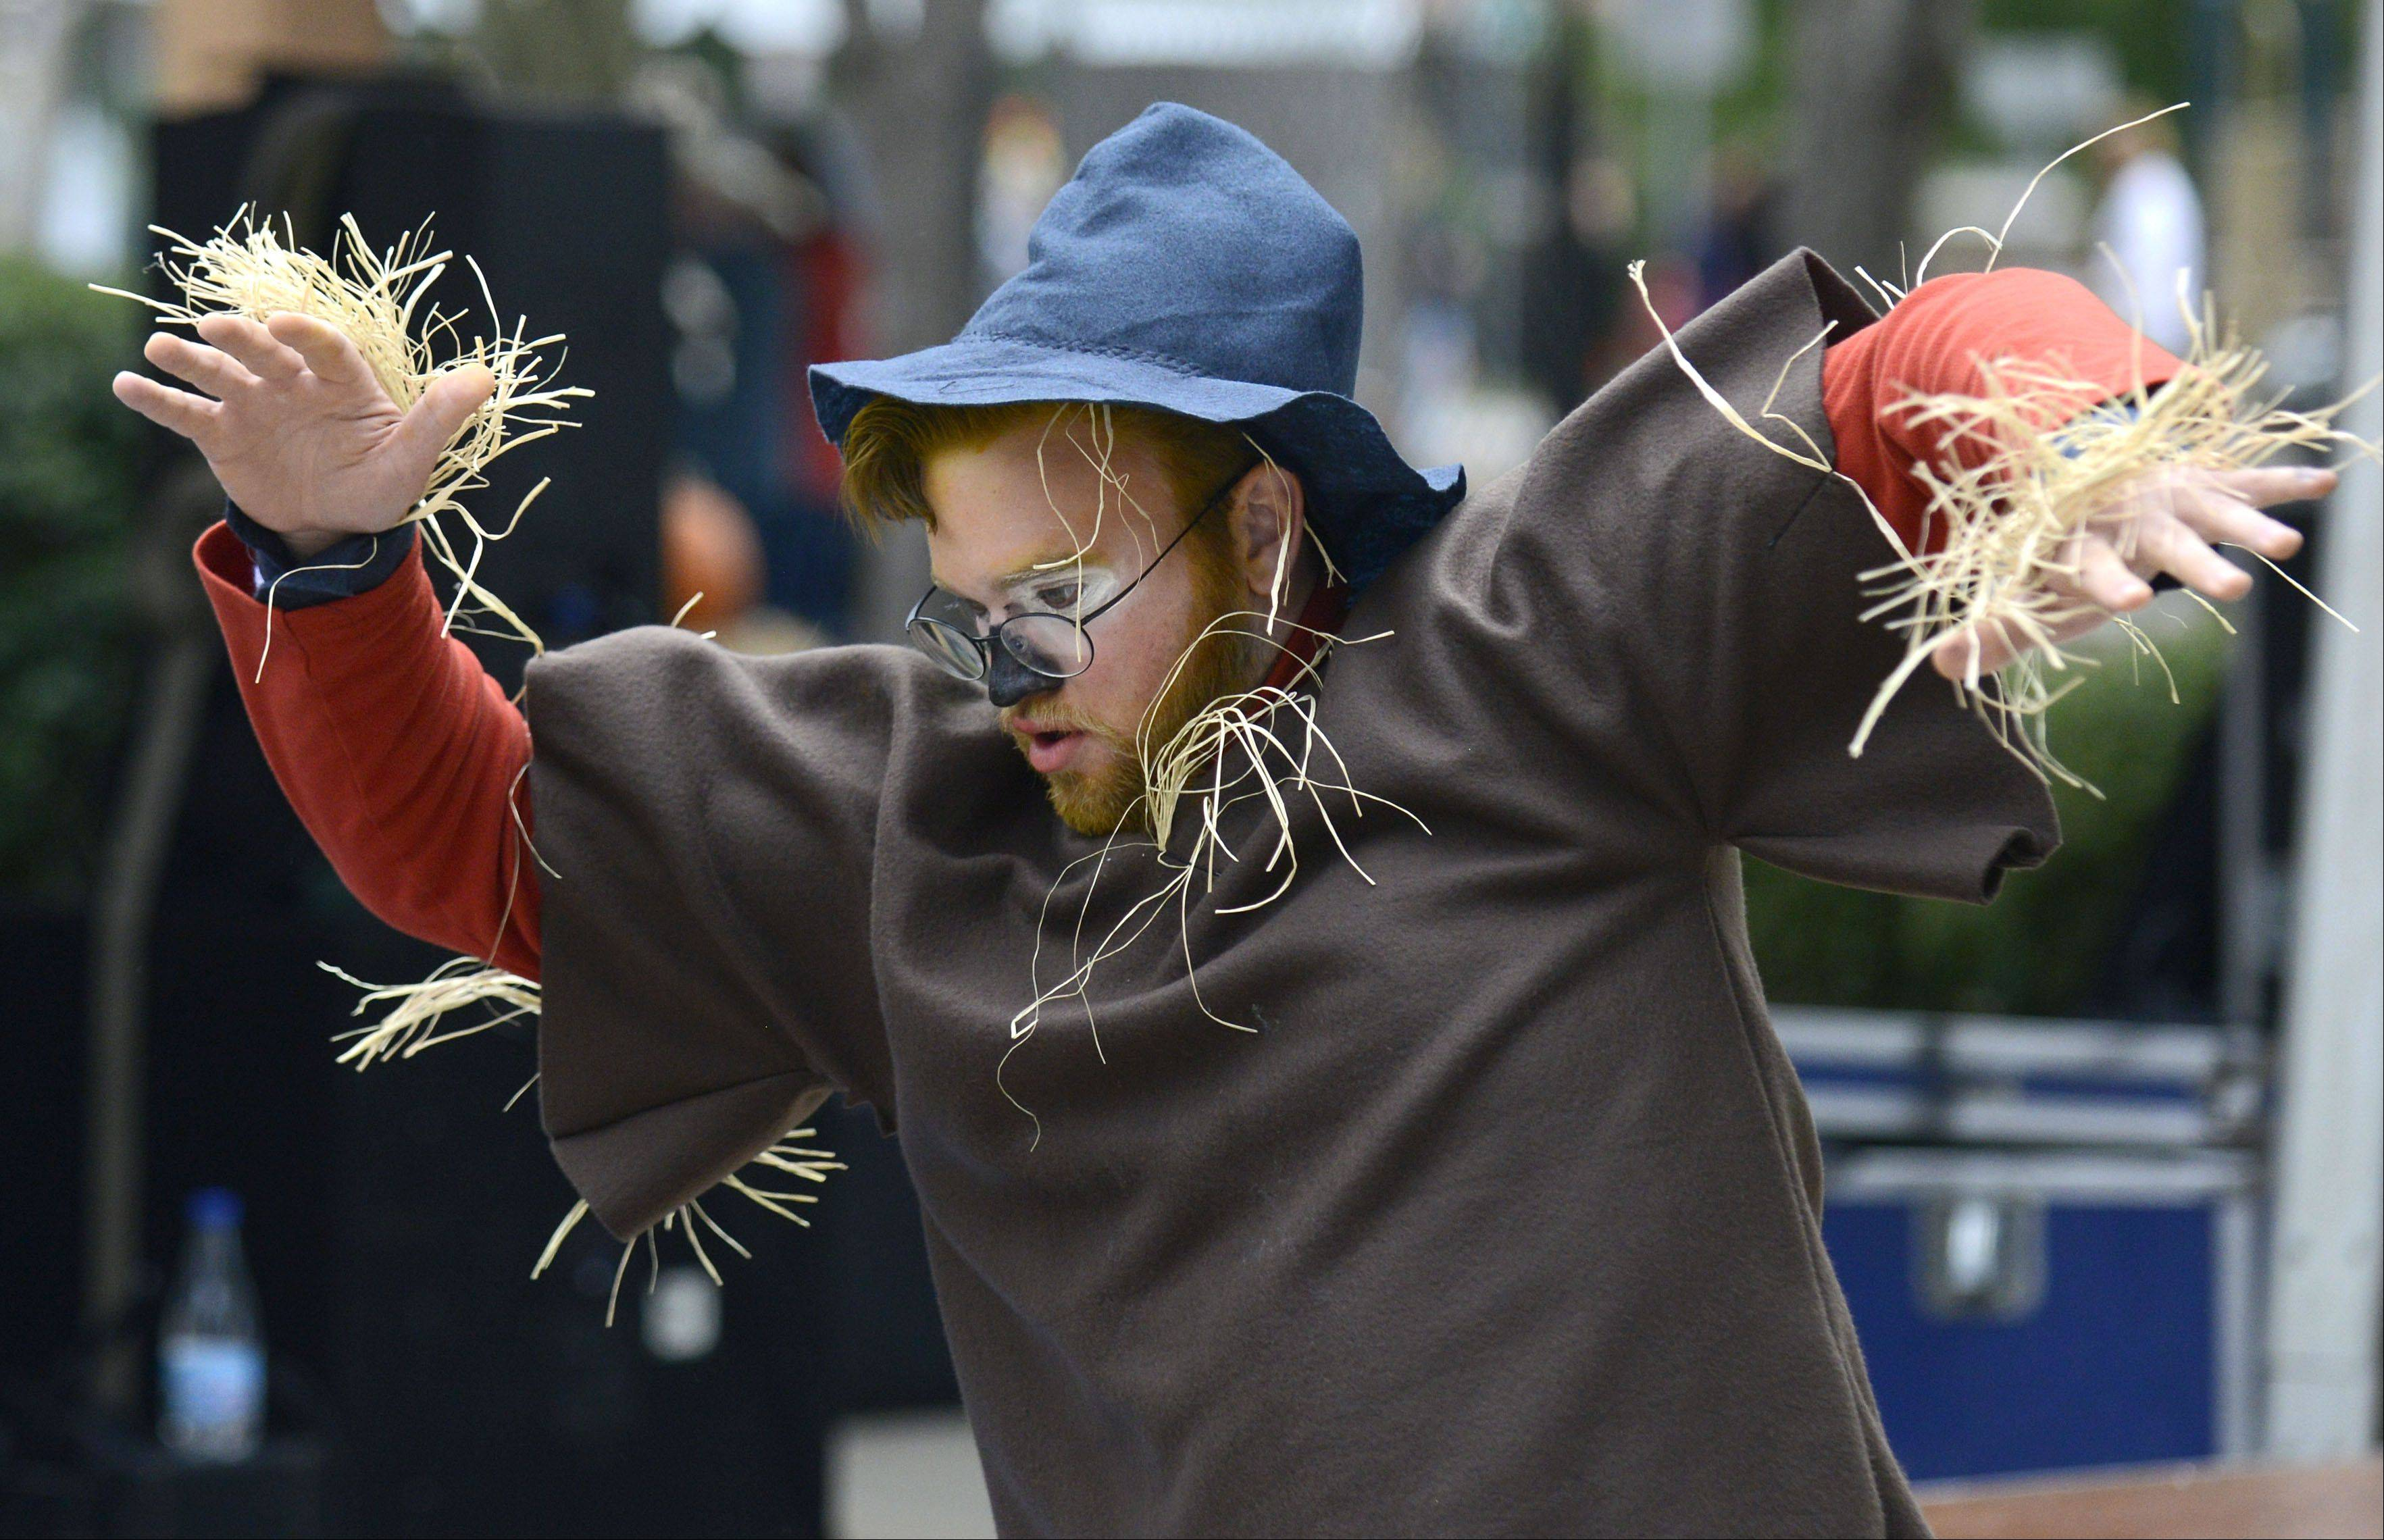 Steven Sledzinski, of Geneva, dressed as Chuck the Scarecrow Fest mascot, dances to live music in the square at Lincoln Park in St. Charles on Saturday.